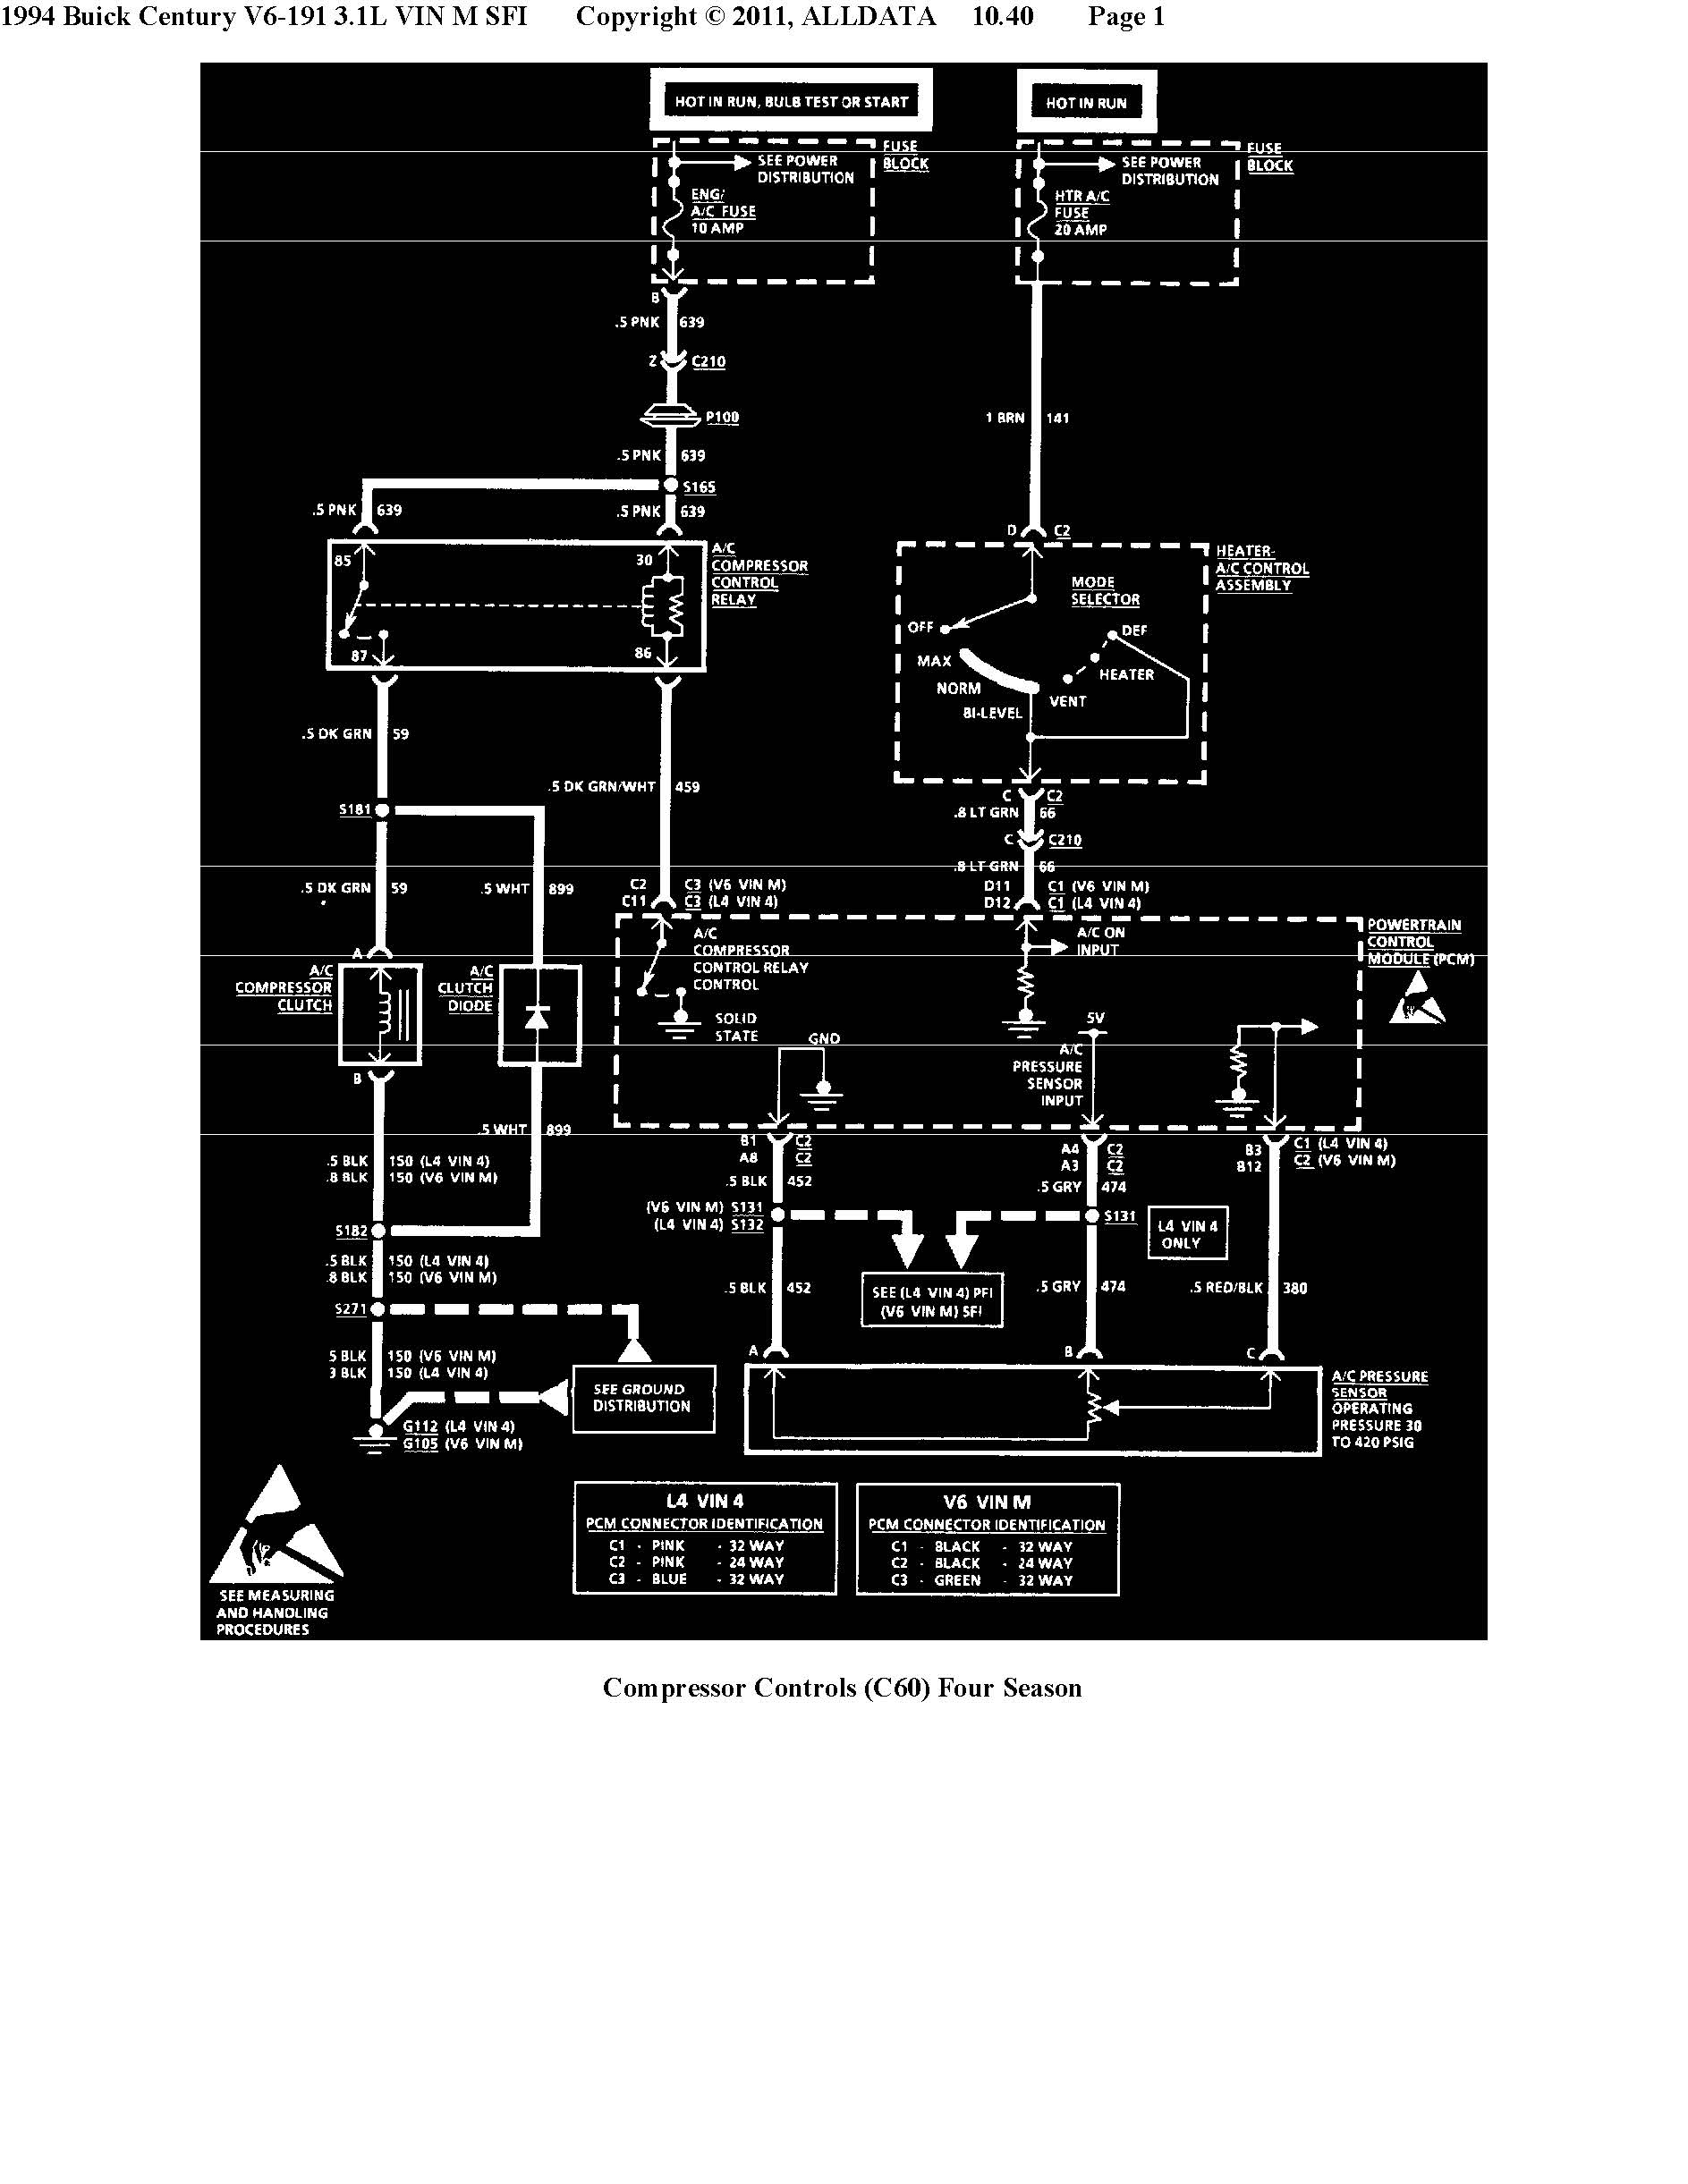 ac relay wiring how do i re-engage the a/c compressor clutch on a '94 ... ac power relay wiring diagram #15